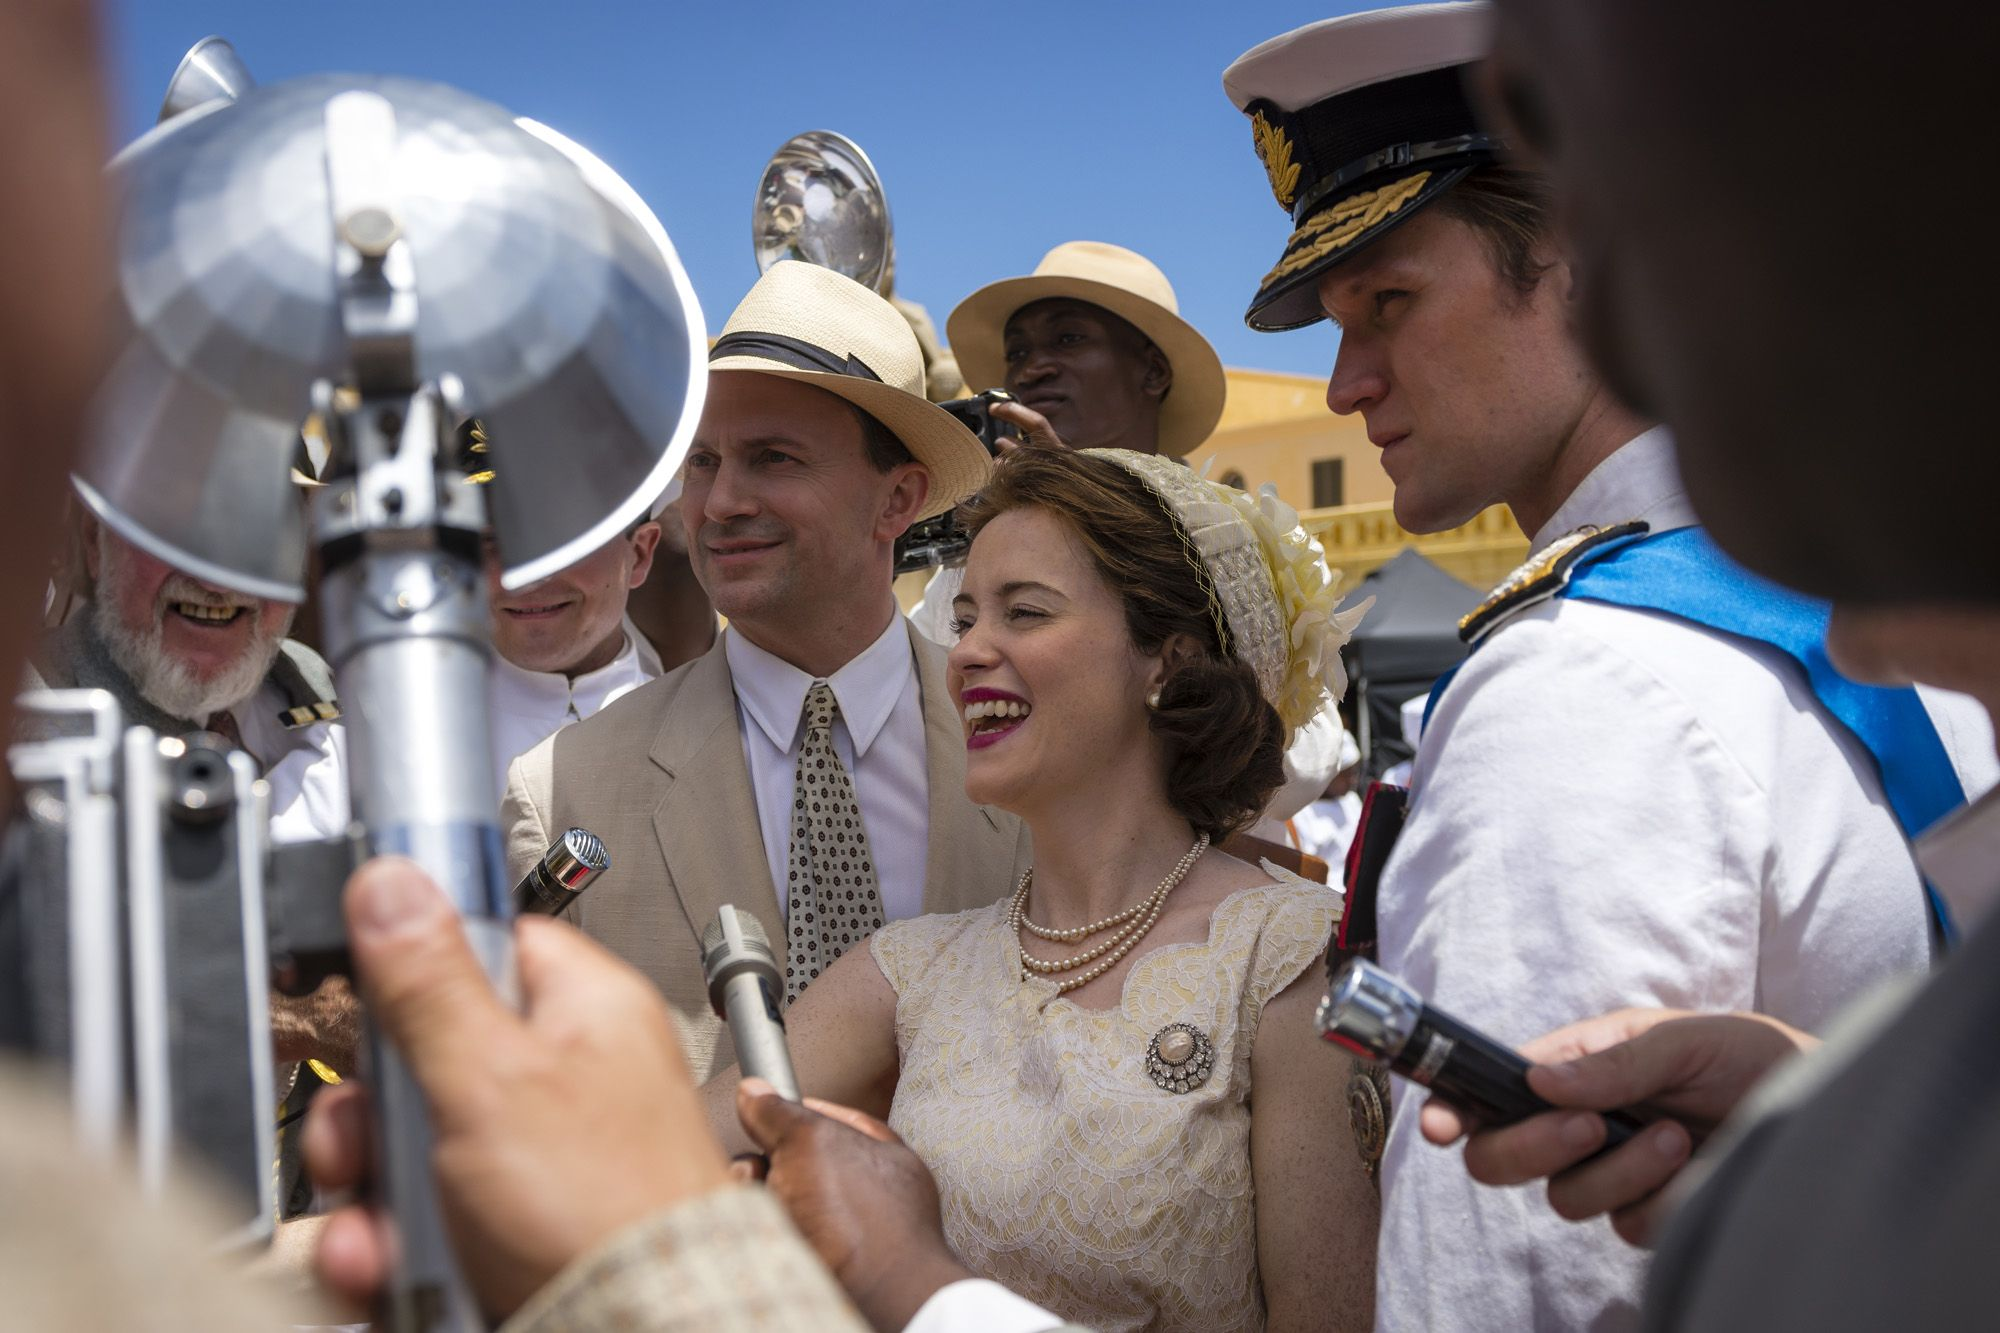 Why Is The Crown (Season 2) Netflix's Most ExpensiveTV Series?